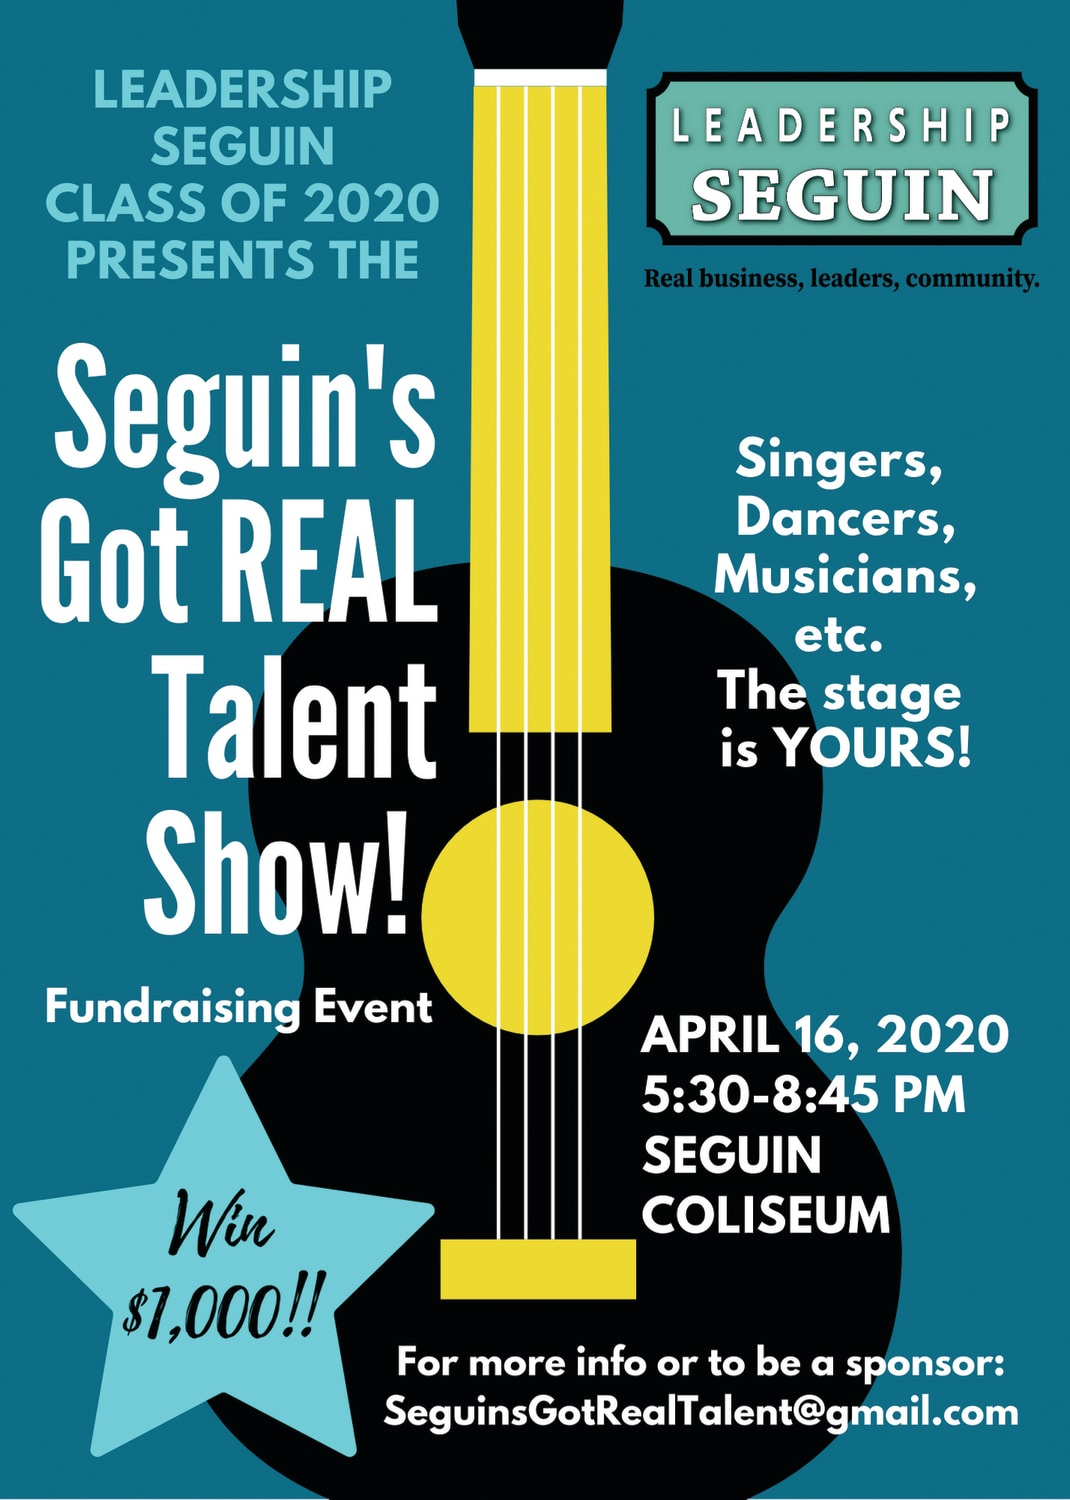 Leadership Seguin Fundraiser